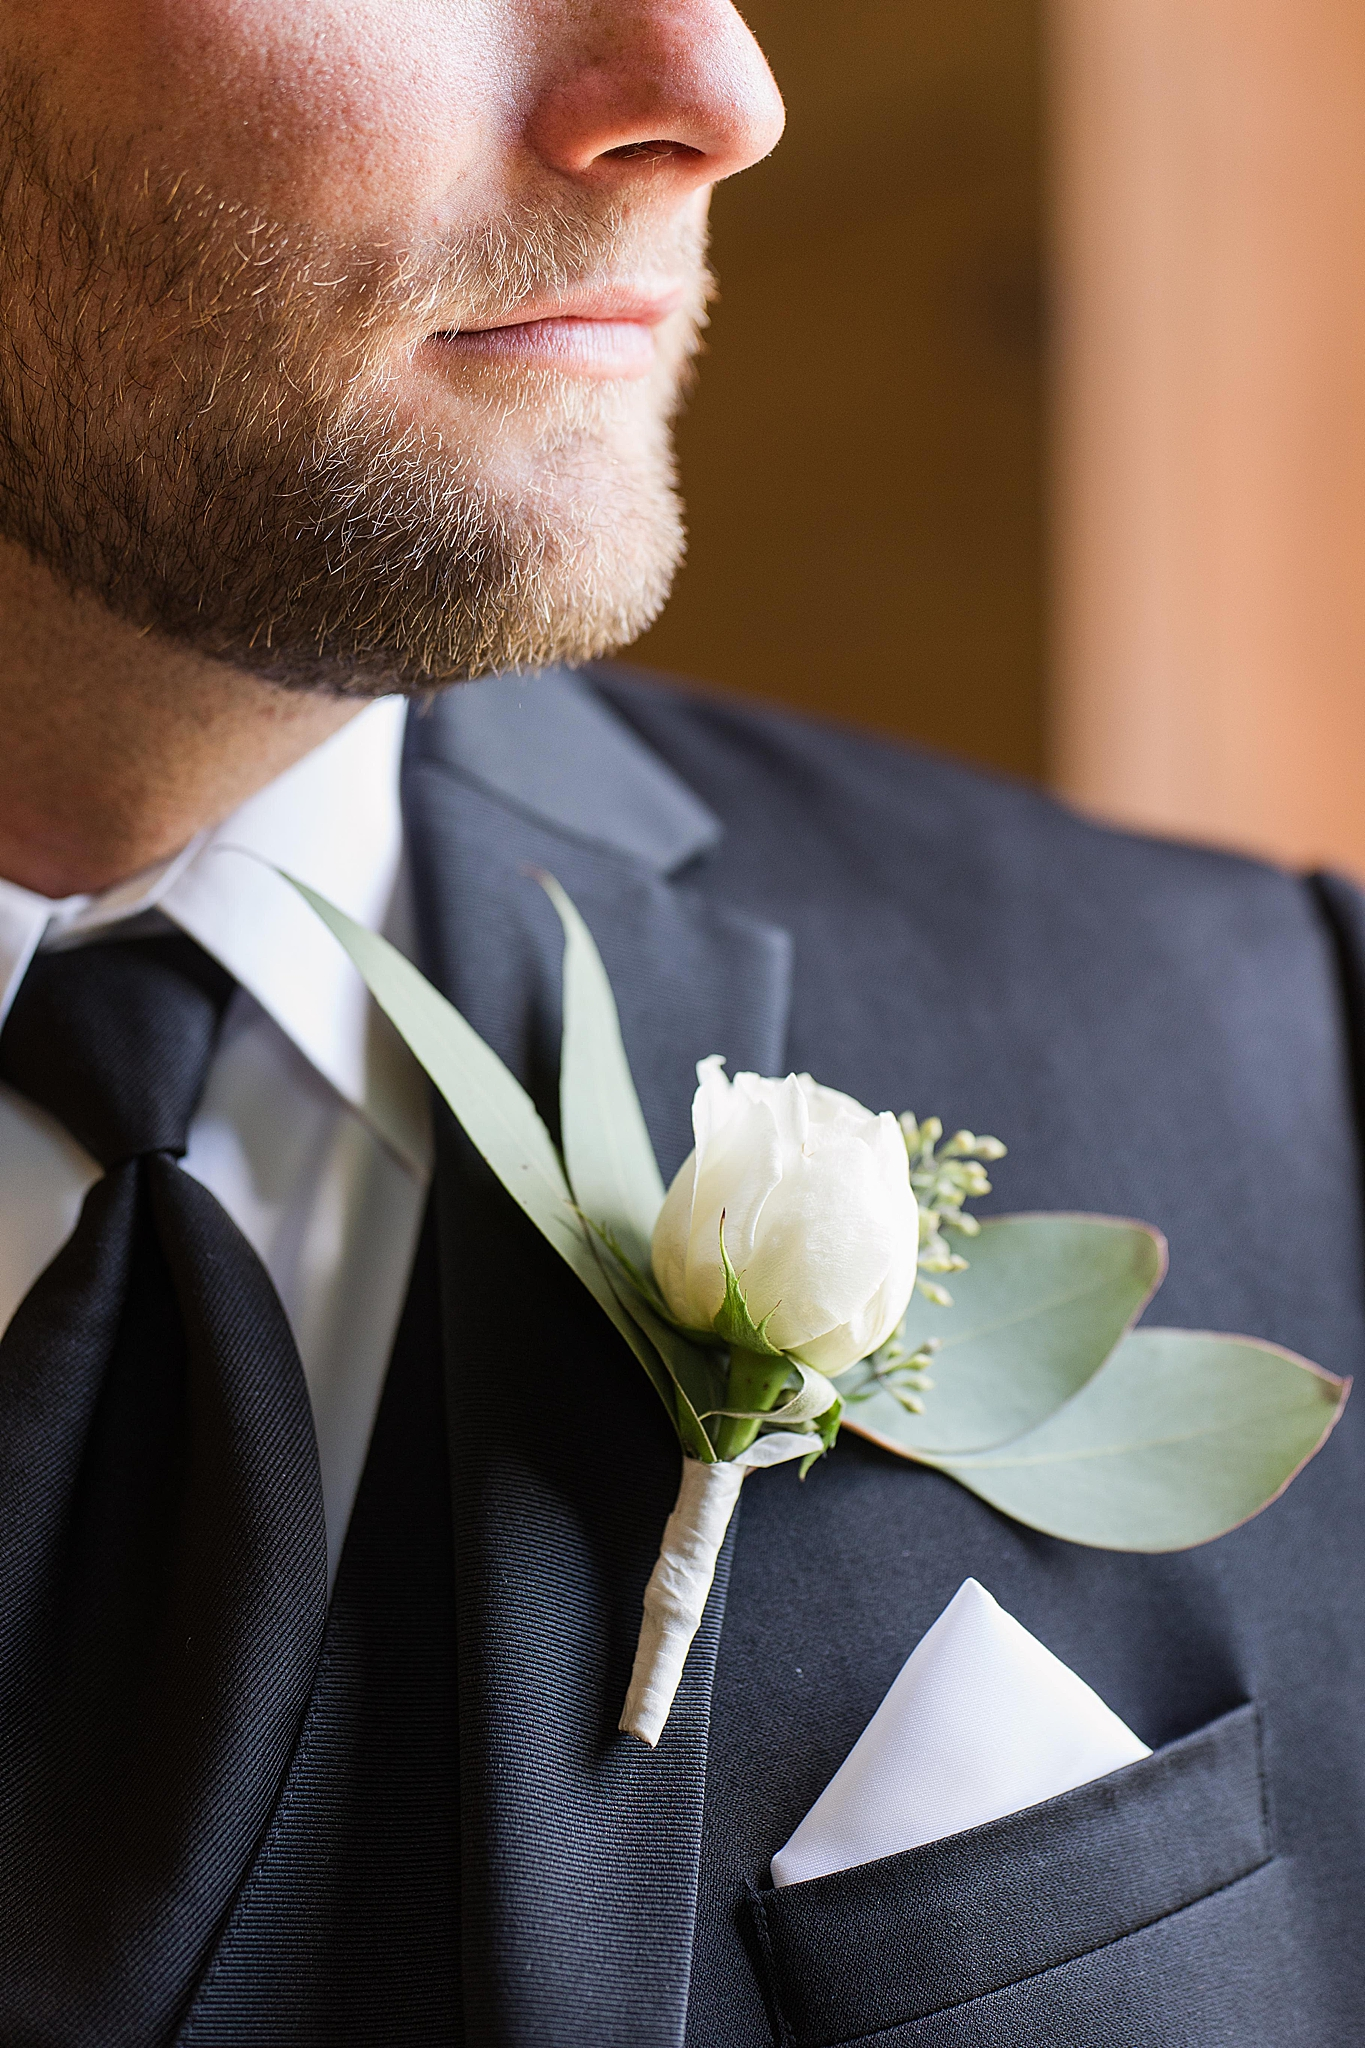 groom poses with ivory rose boutonnière